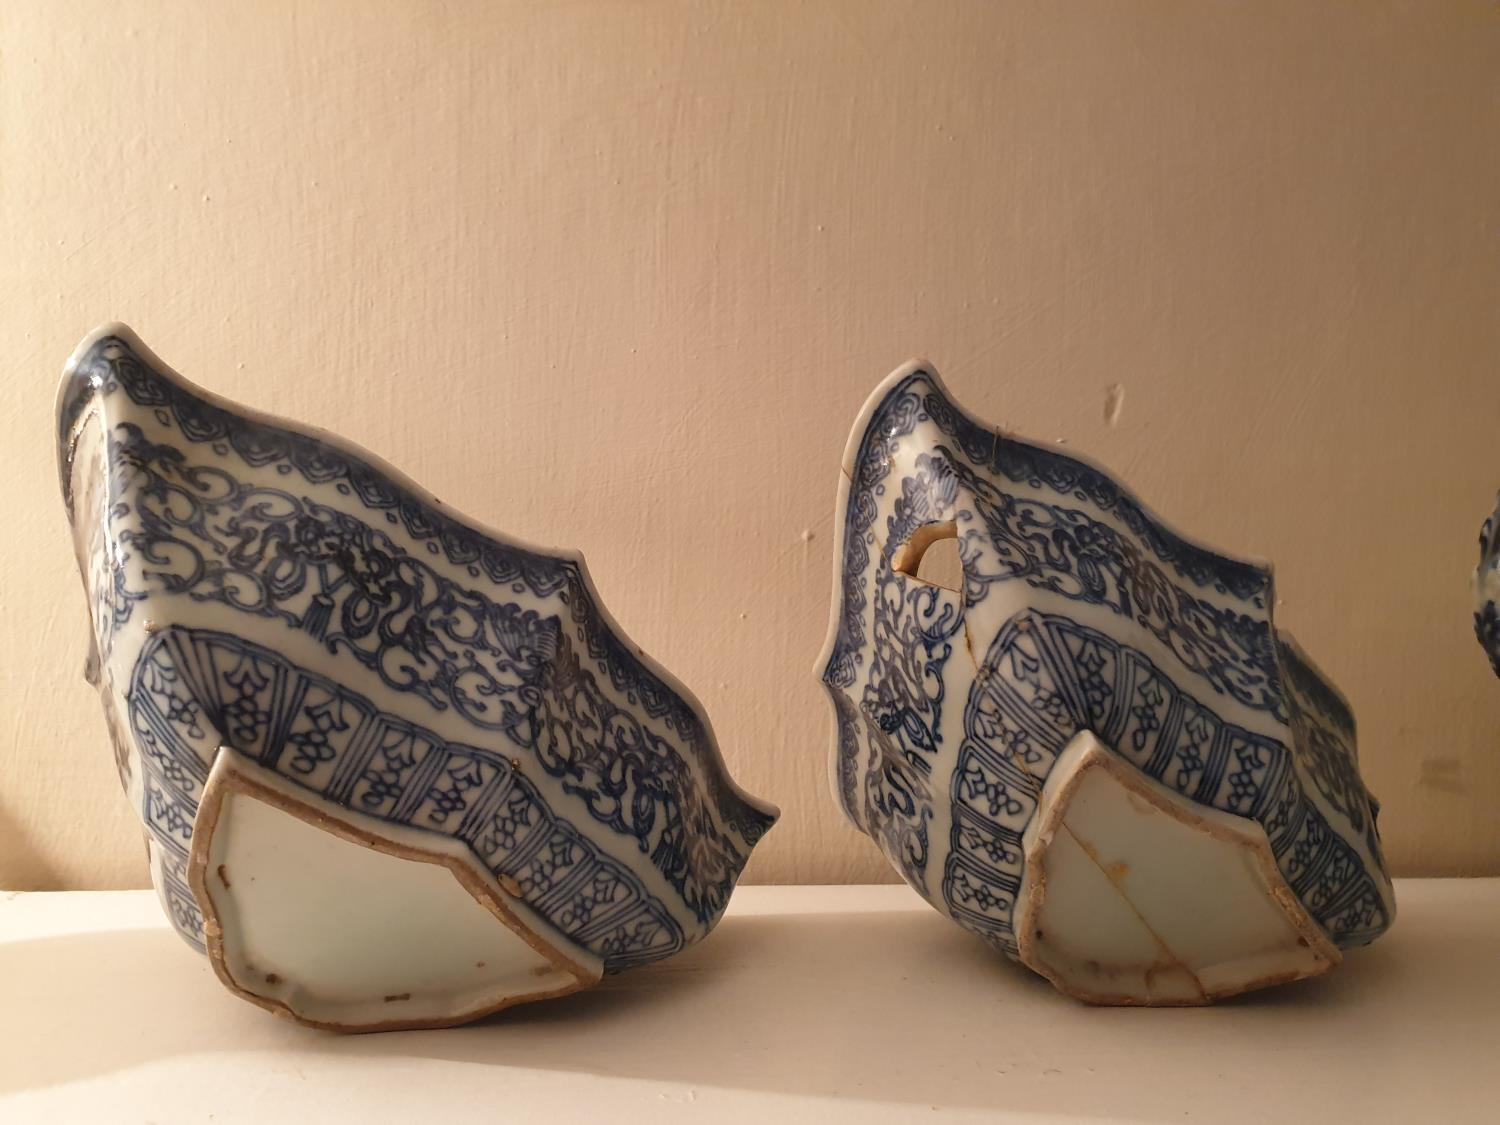 Lot 58 - A pair of Blue and White Oriental Bowls in triangular shape (1 AF) 20 x 13cm. along with a large